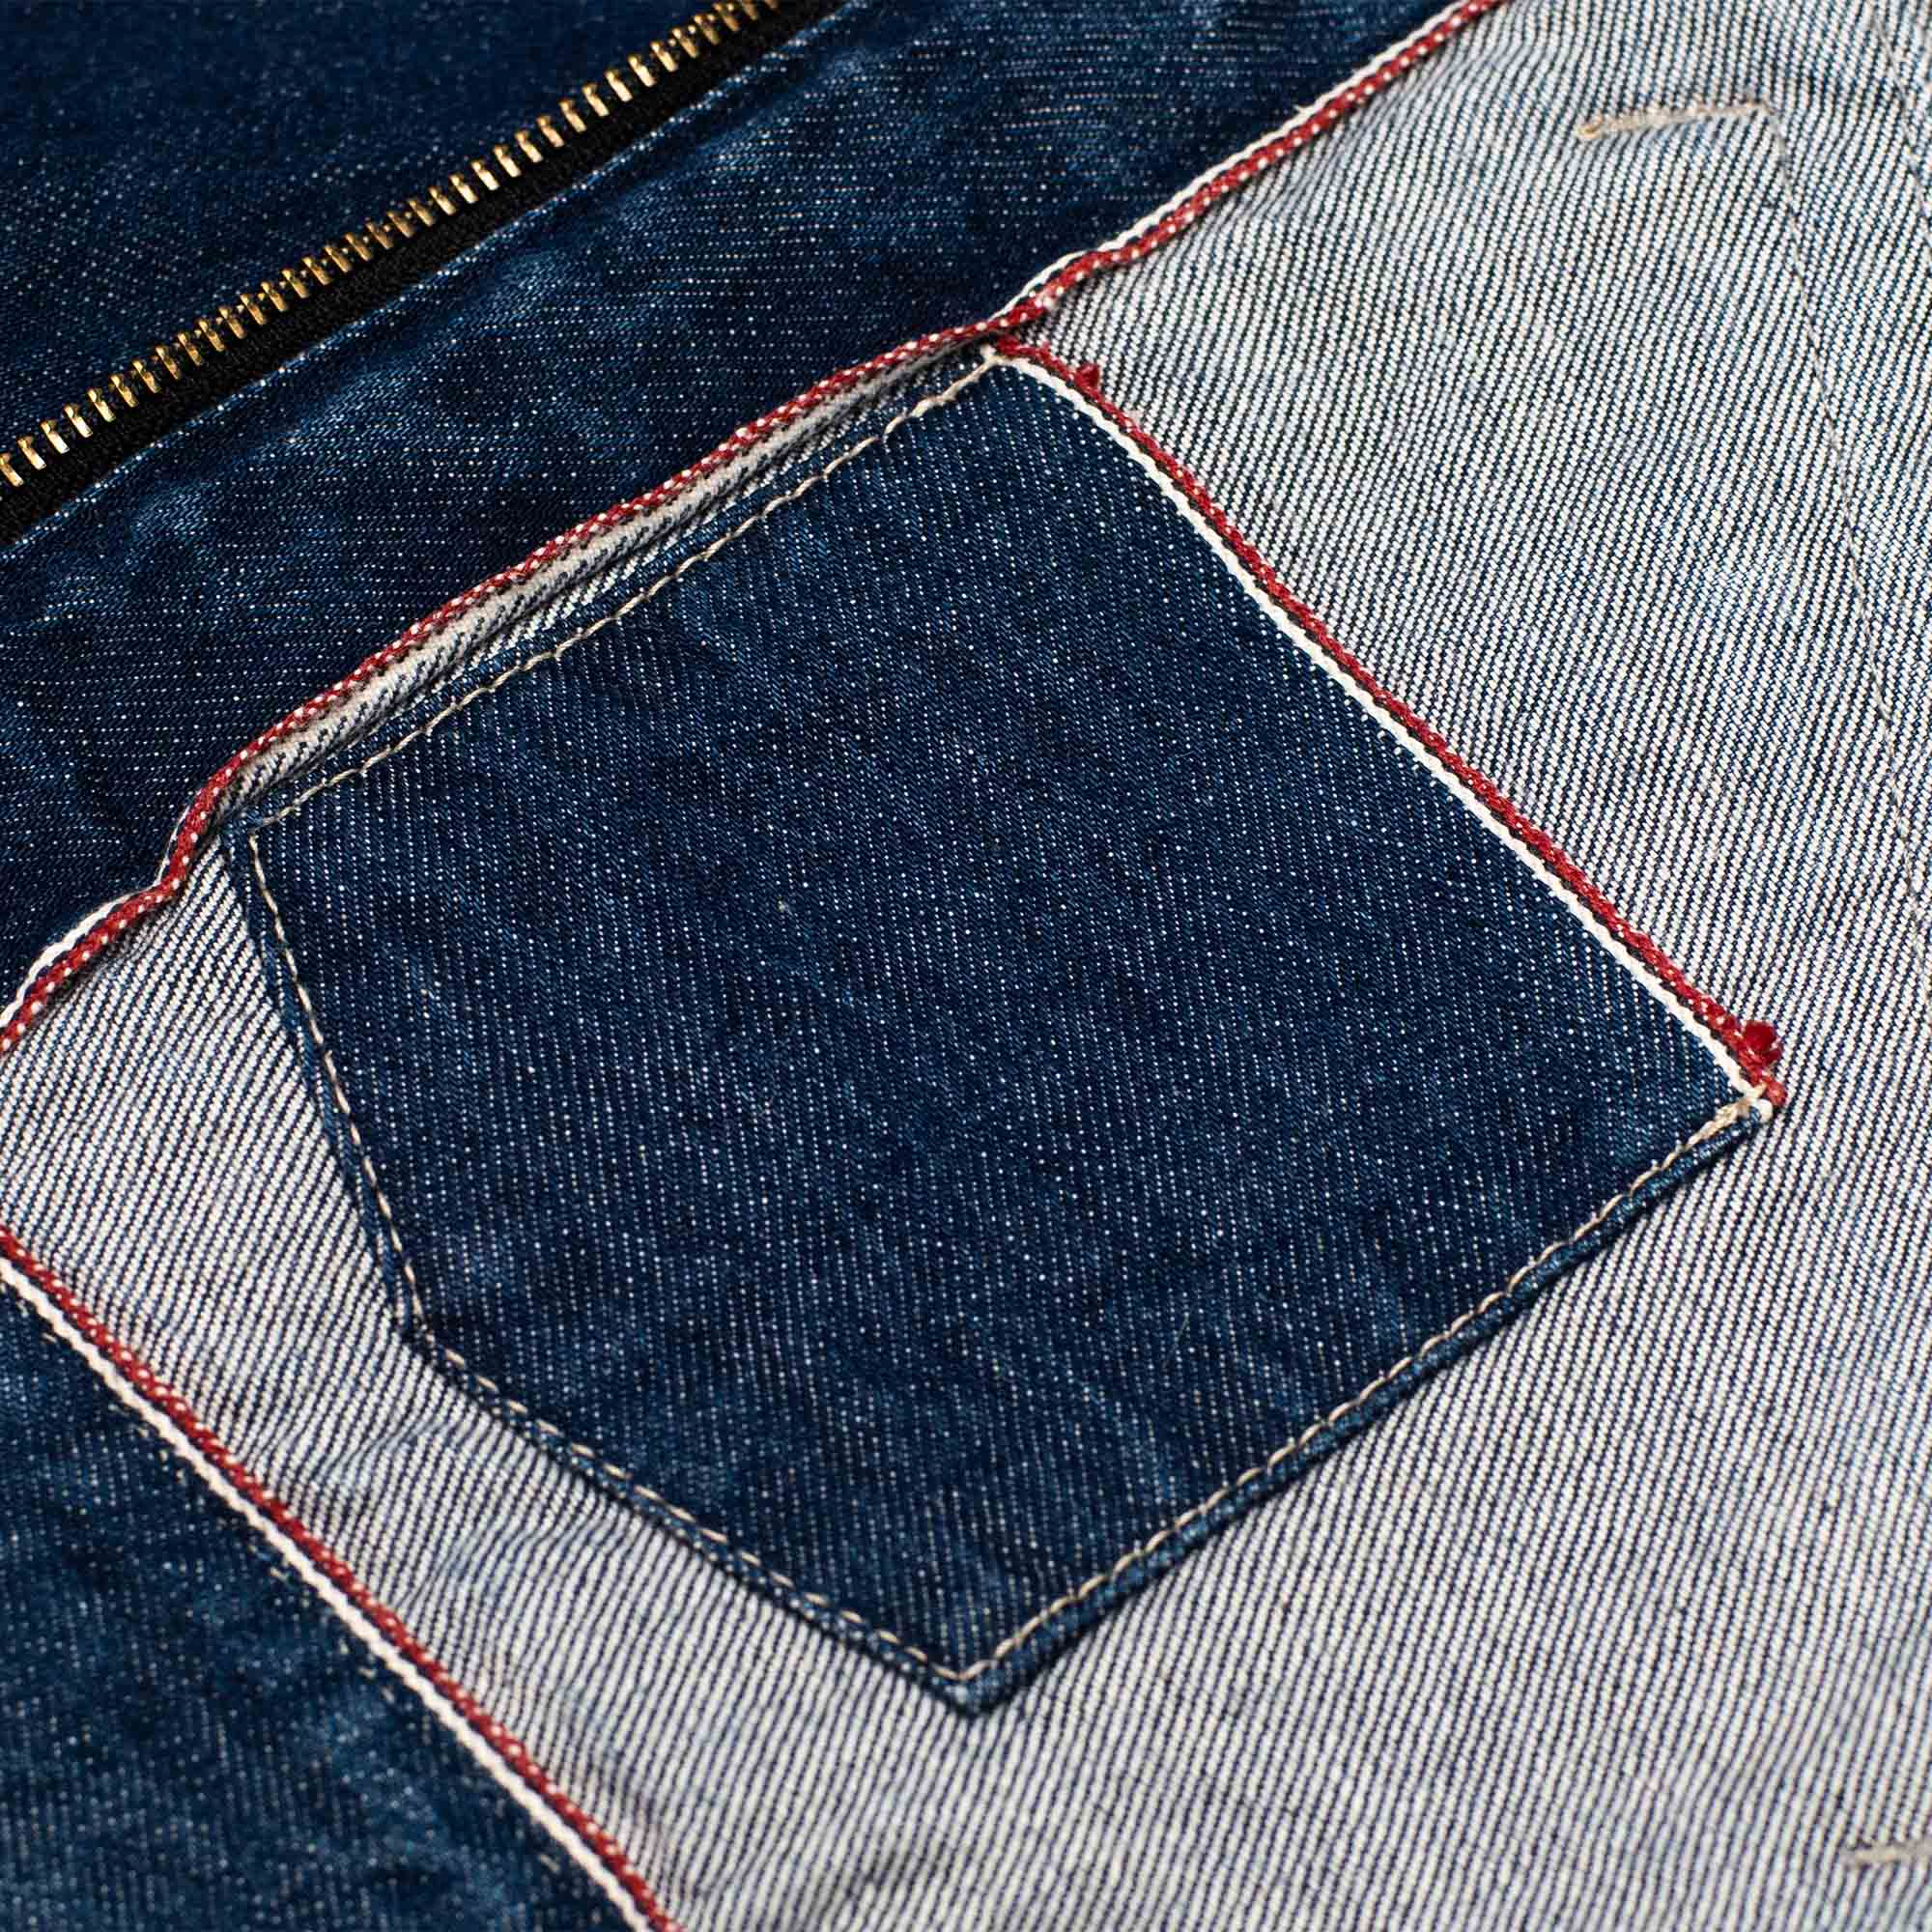 shangri-la-heritage-varenne-ranch-selvedge-candiani-denim-jacket-still-life-inner-pocket